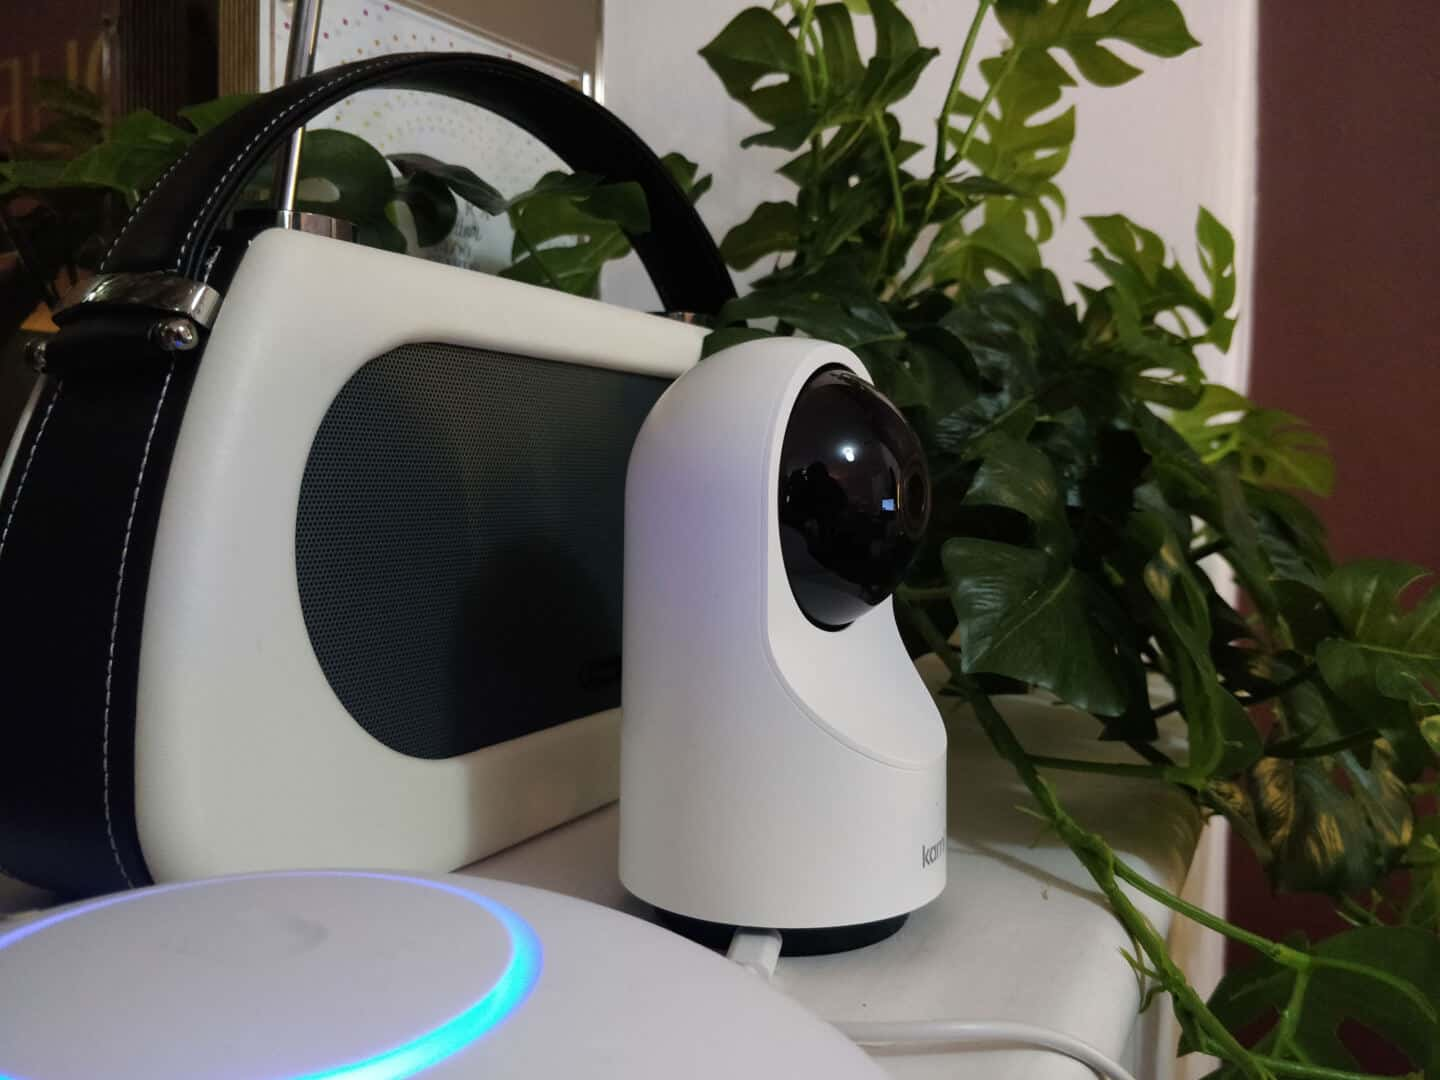 Kami indoor home security camera on a shelf with a radio, a faux plant and an internet hub